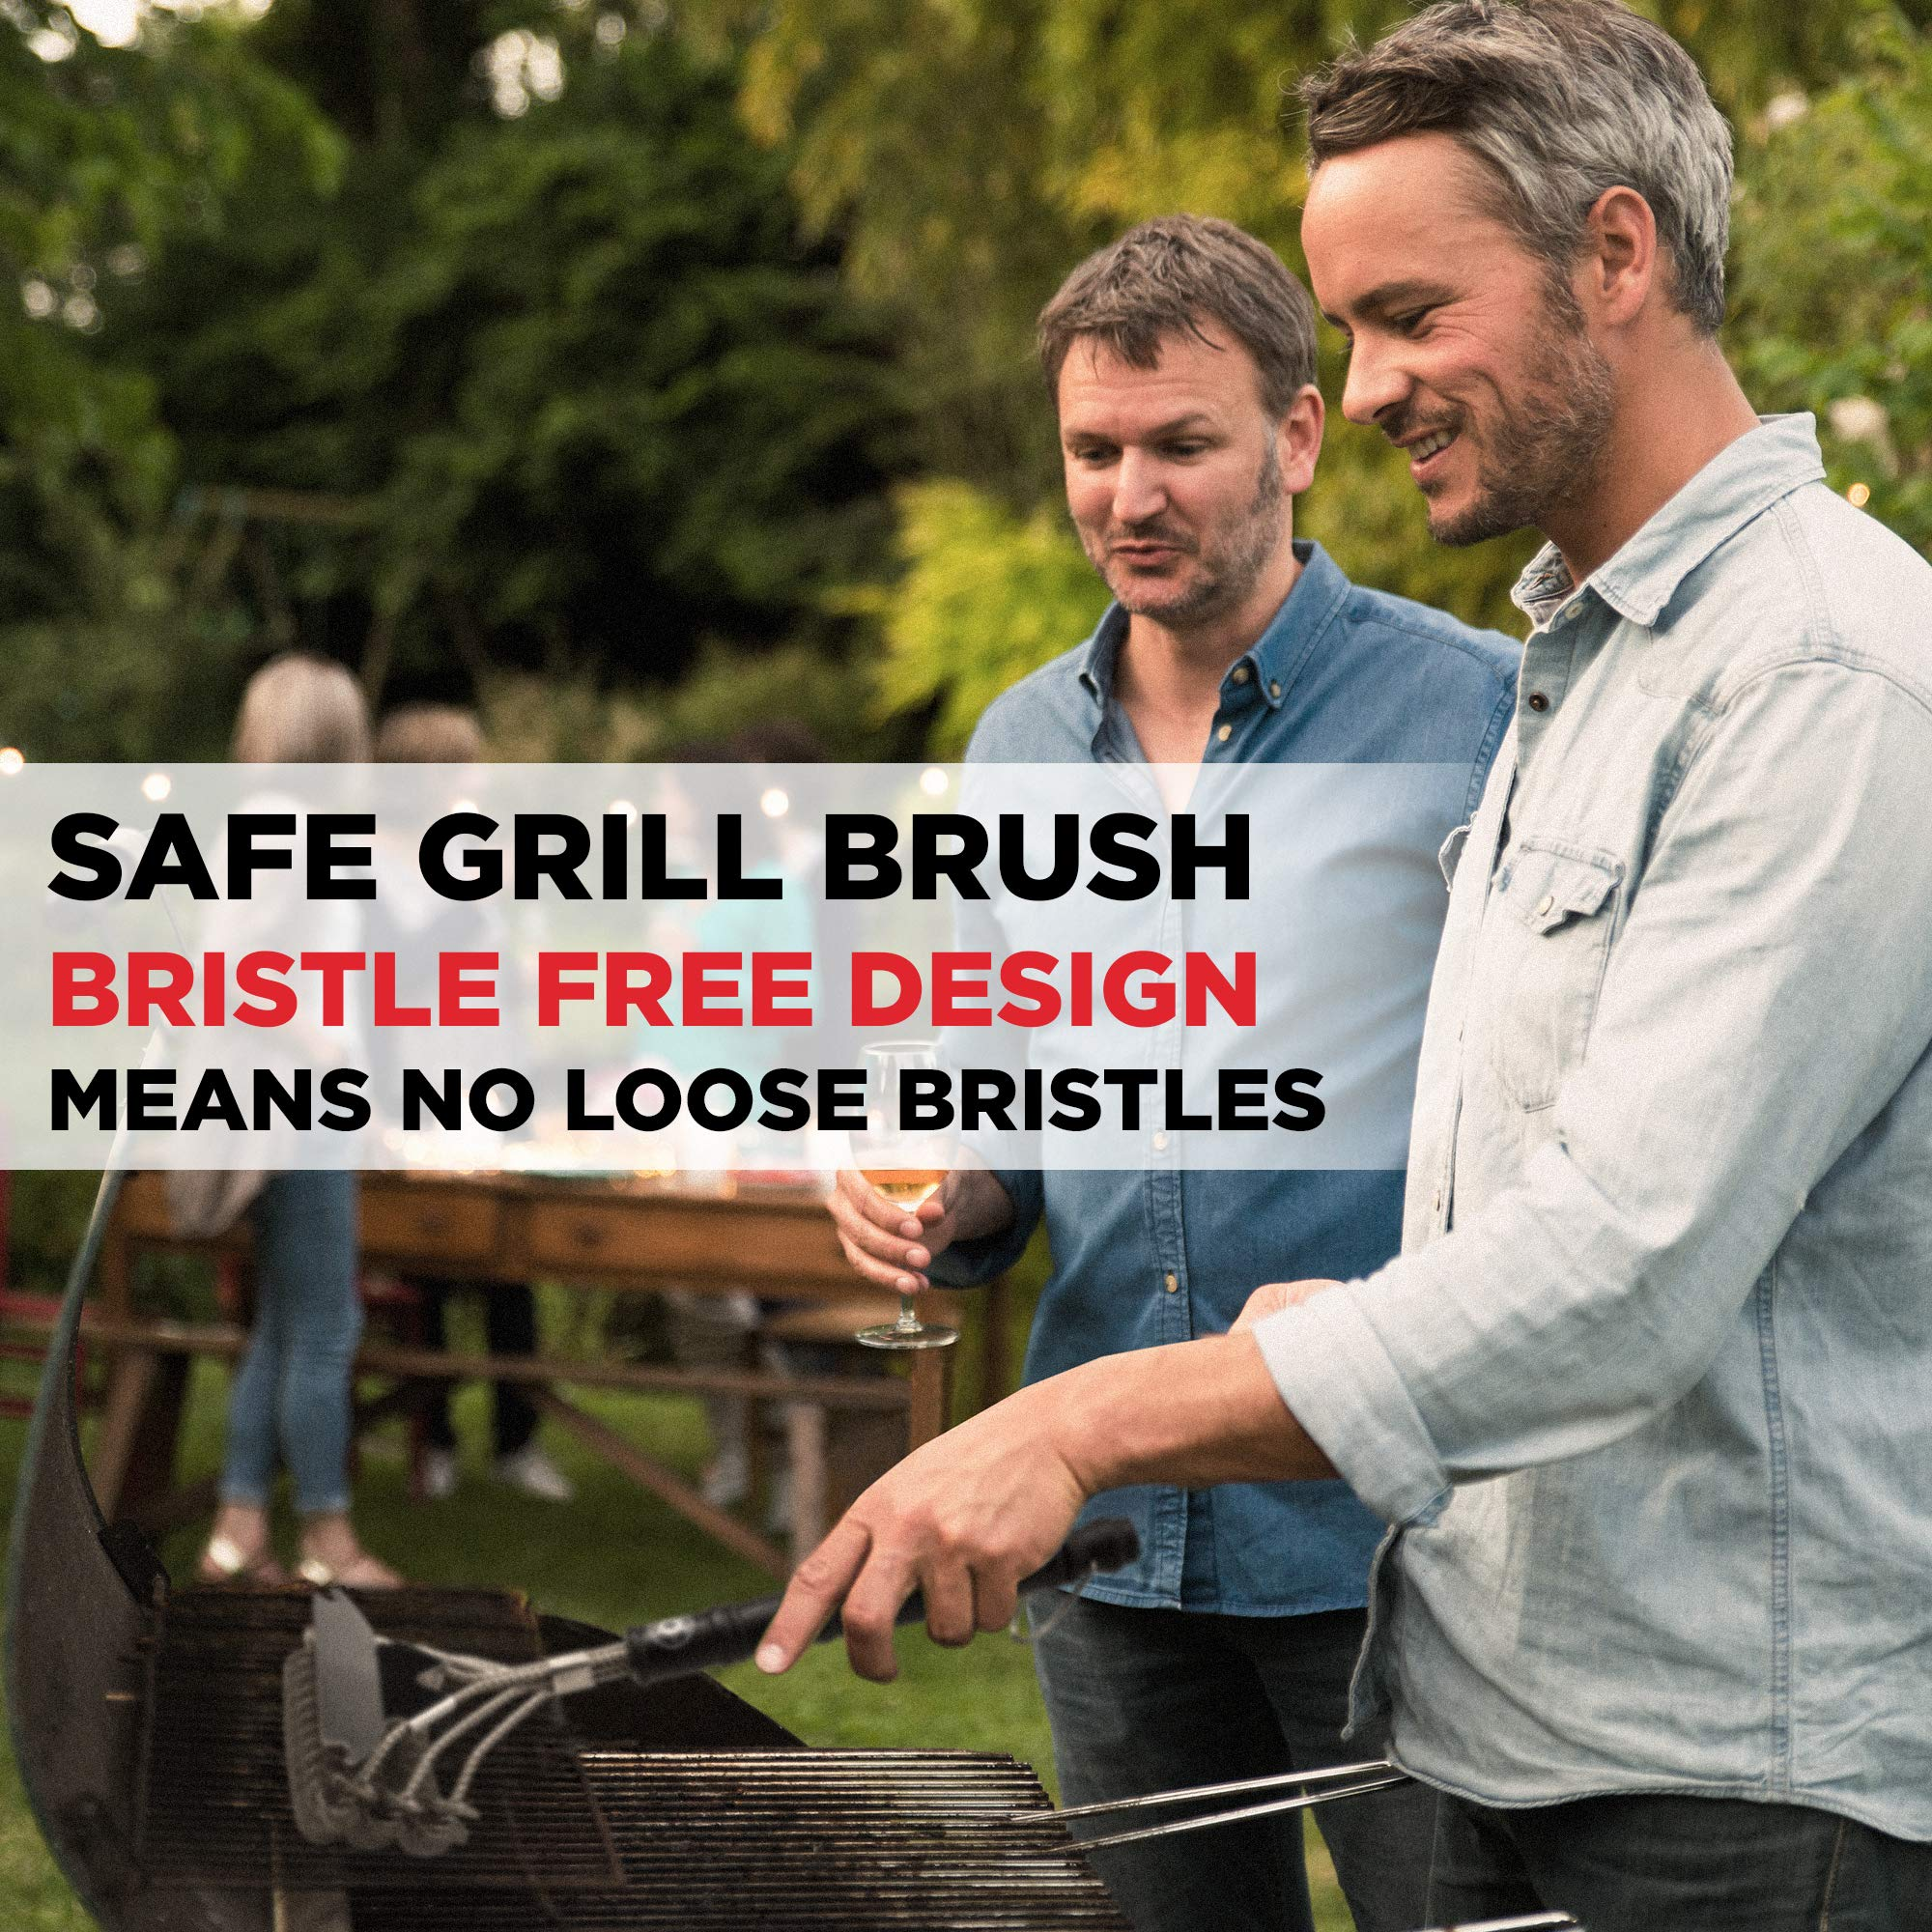 Alpha Grillers Grill Brush Bristle Free. Best Safe BBQ Cleaner with Extra Wide Scraper. Perfect 18 Inch Stainless Steel Tools for All Grill Types, Including Weber. Ideal Barbecue Accessories by Alpha Grillers (Image #2)